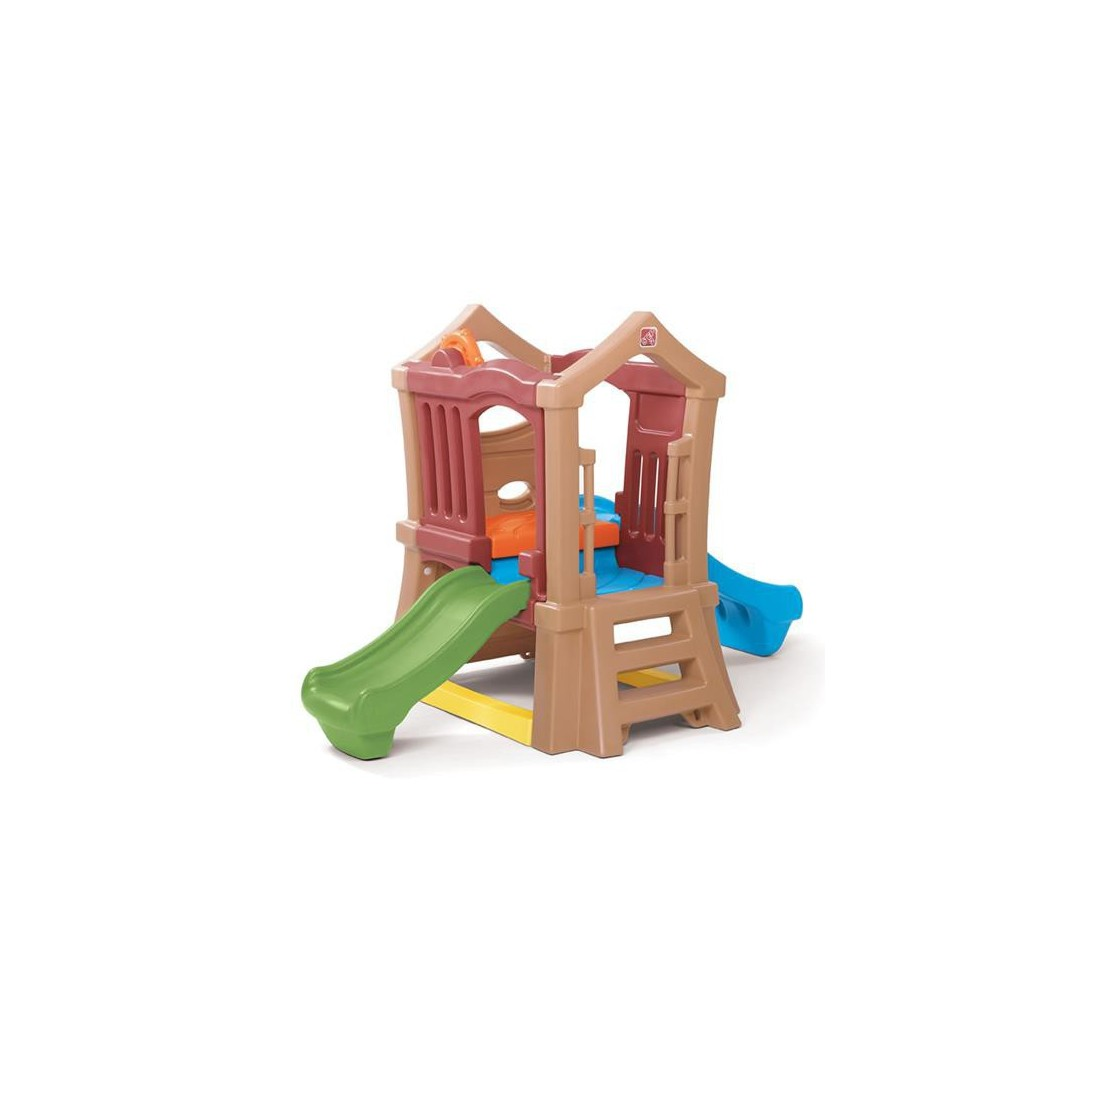 PLAY UP DOUBLE SLIDE CLIMBER